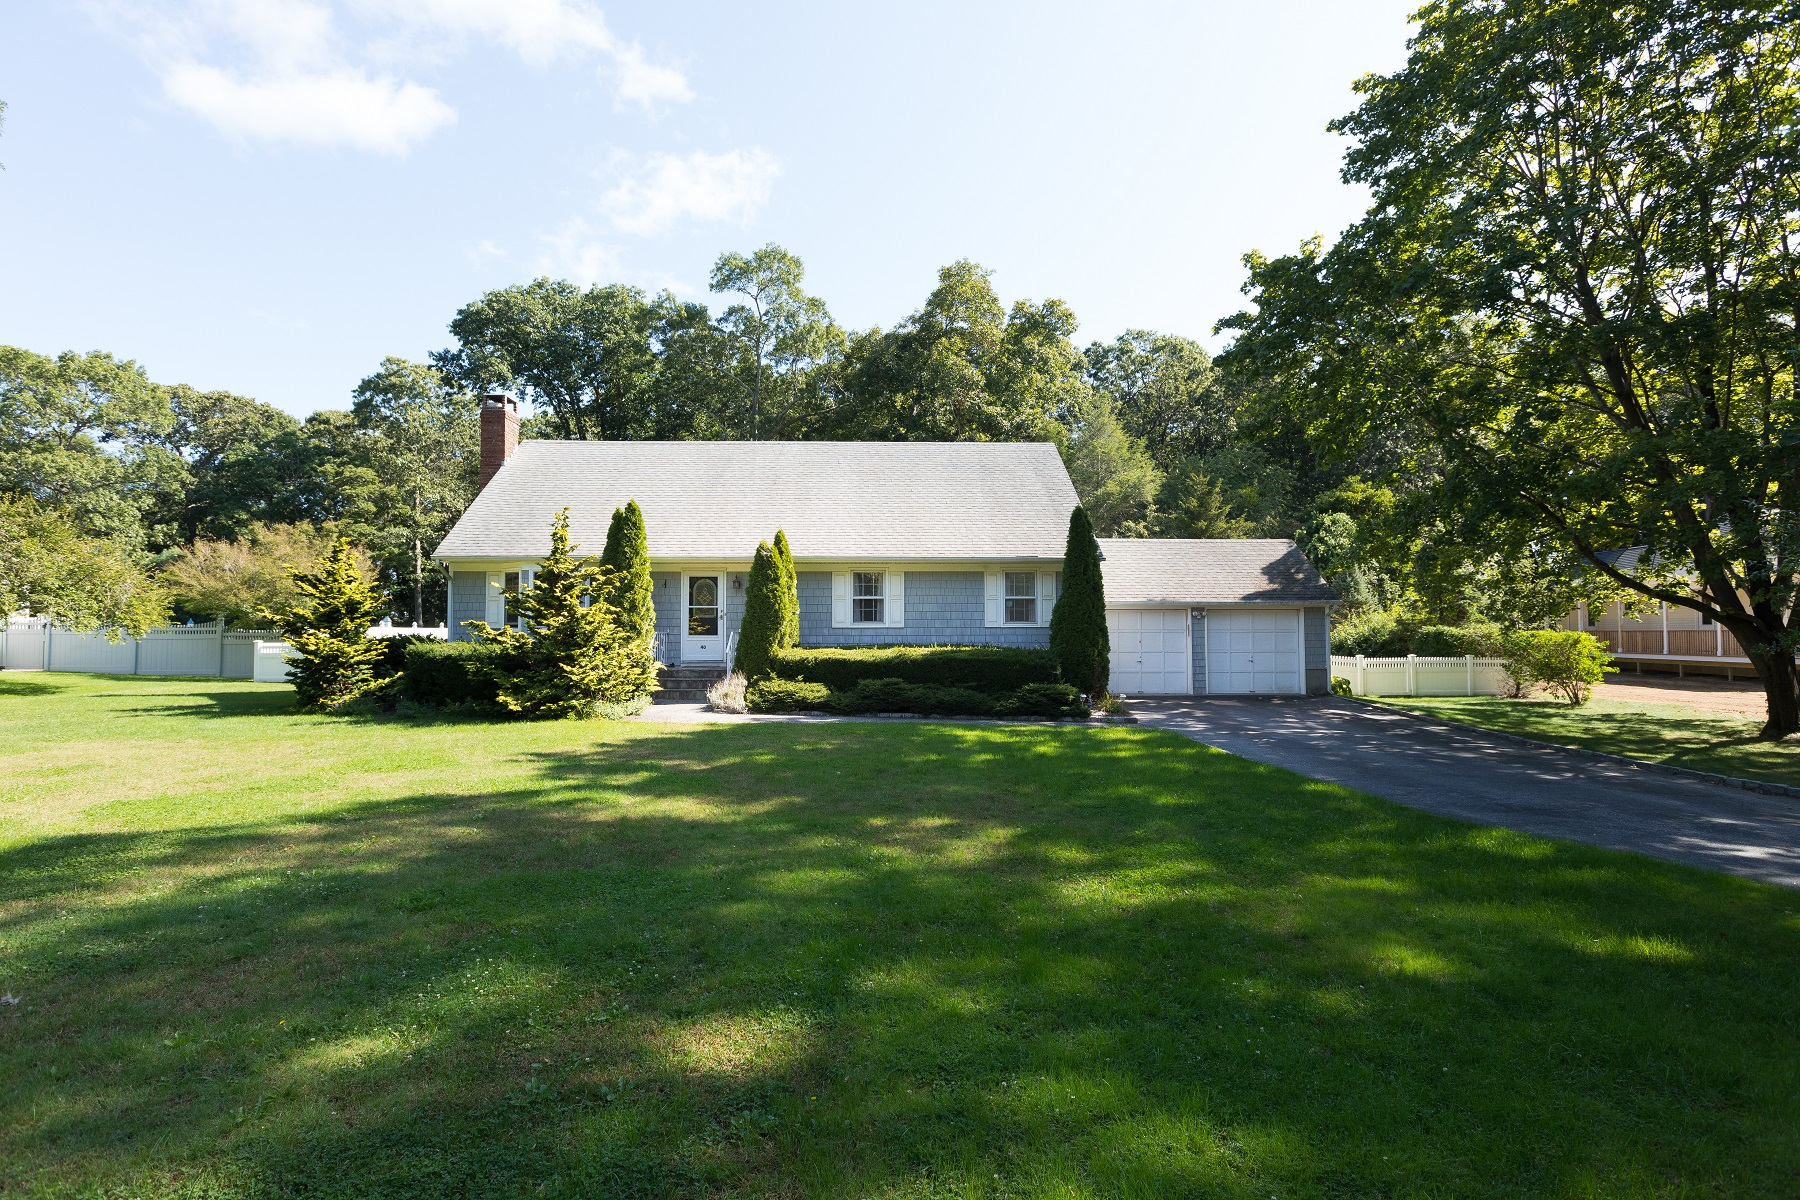 Single Family Homes for Active at Aquebogue 40 Colonial Dr Aquebogue, New York 11931 United States